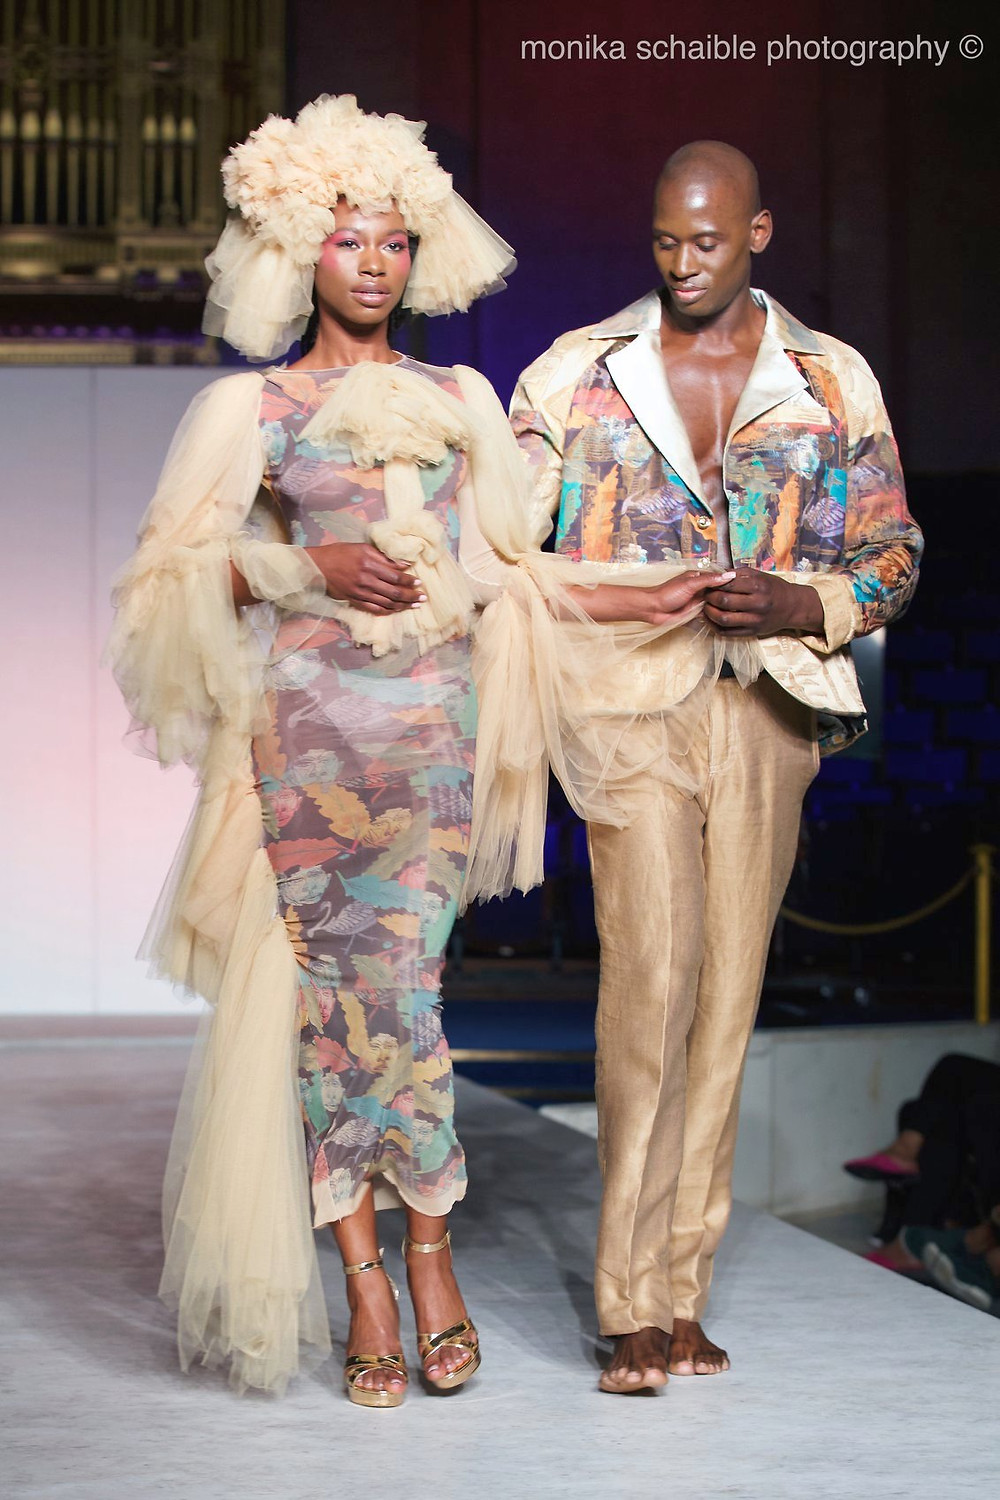 models: Aida Ouro and Hassan Reese